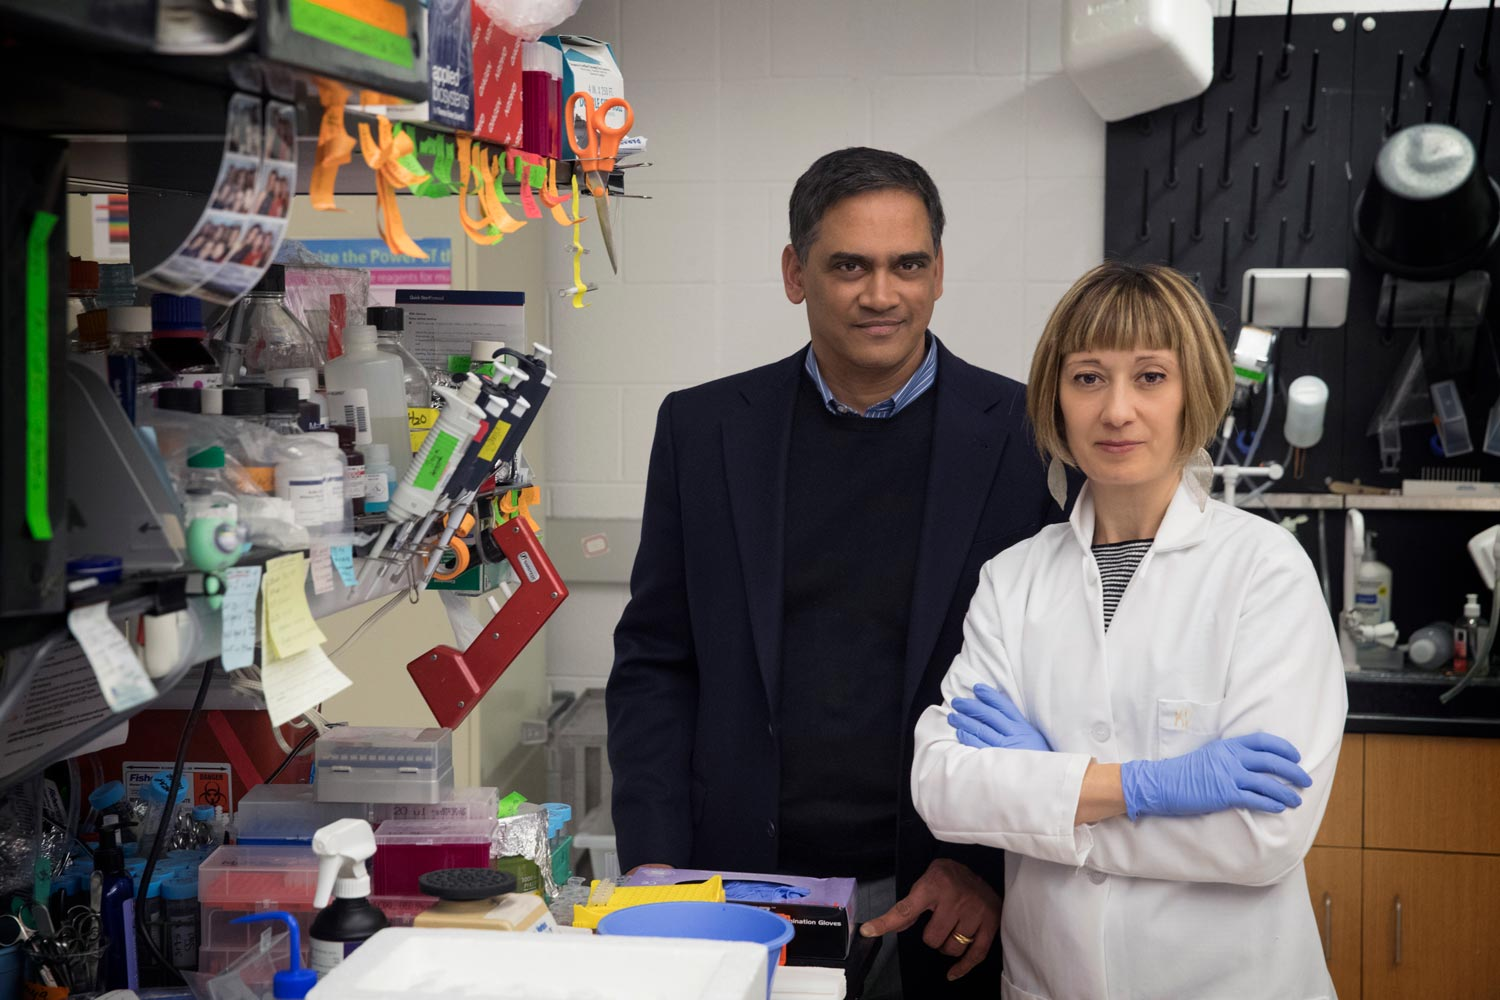 Kodi Ravichandran, left, and Sanja Arandjelovic led new research into the causes of rheumatoid arthritis flare-ups.